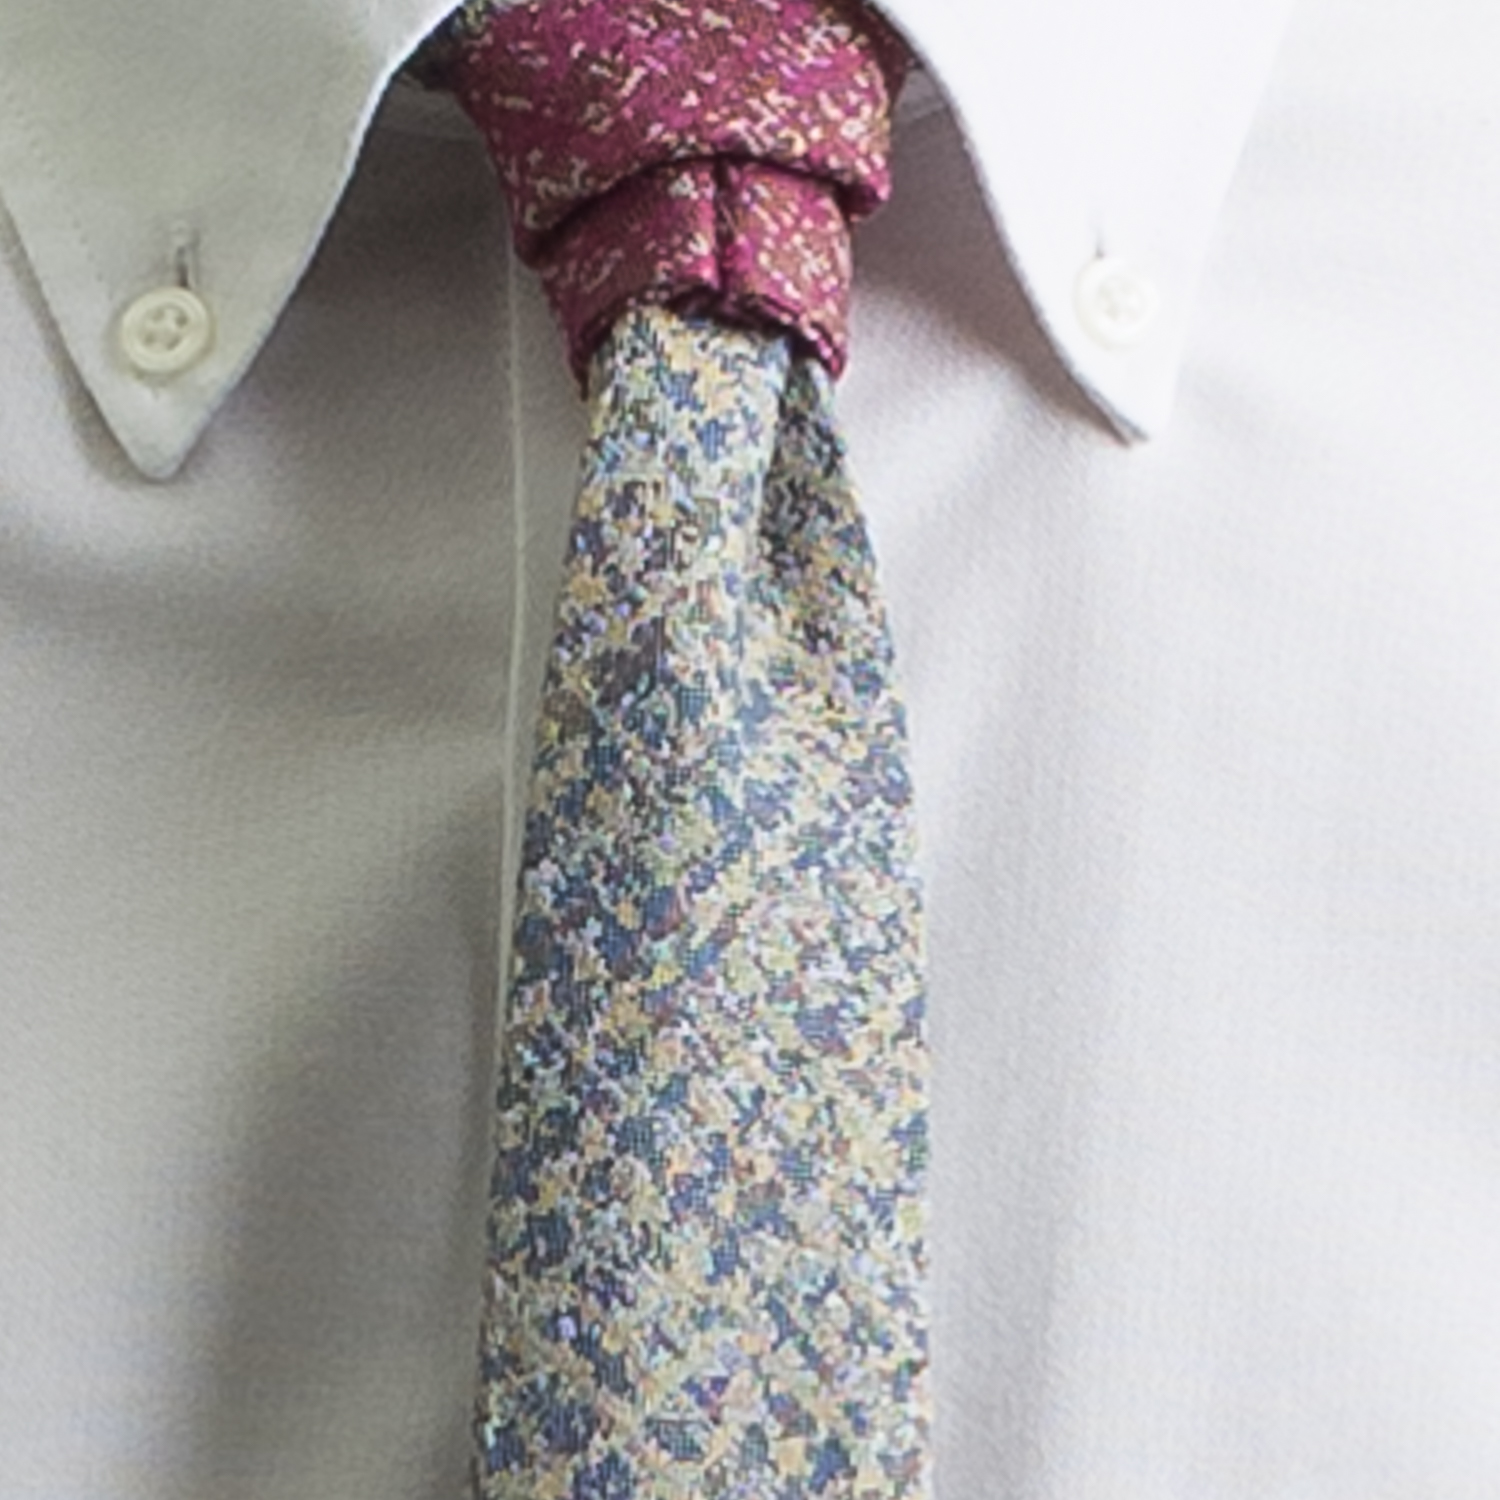 Rosemary Goodenough Man Woven Wool/Silk Tie 'Flying High'